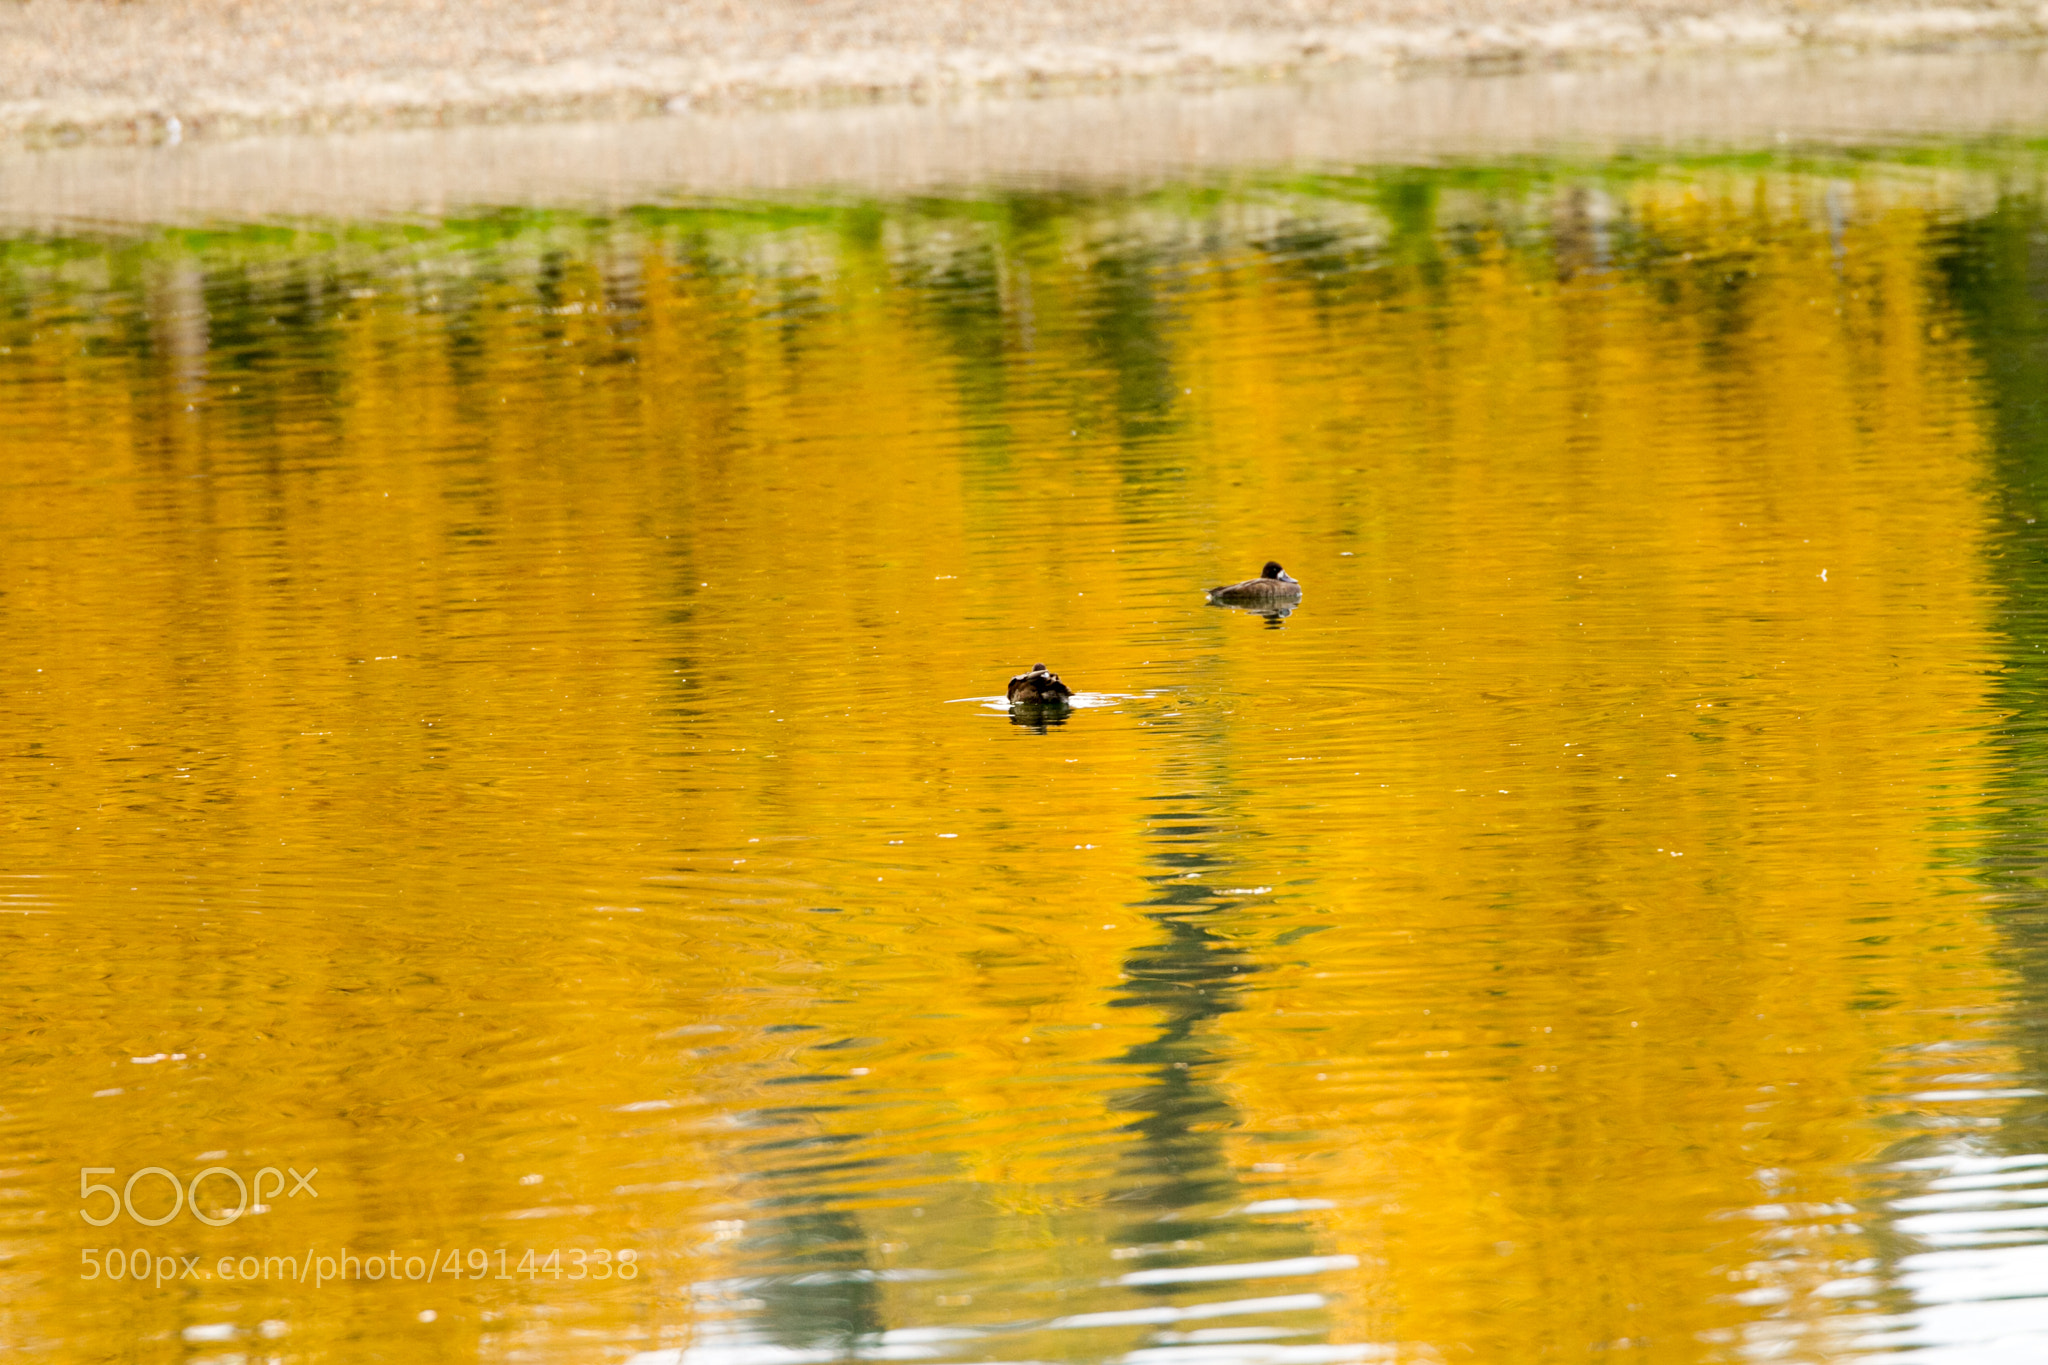 Photograph Ducks on a pond by Ron Palmer on 500px